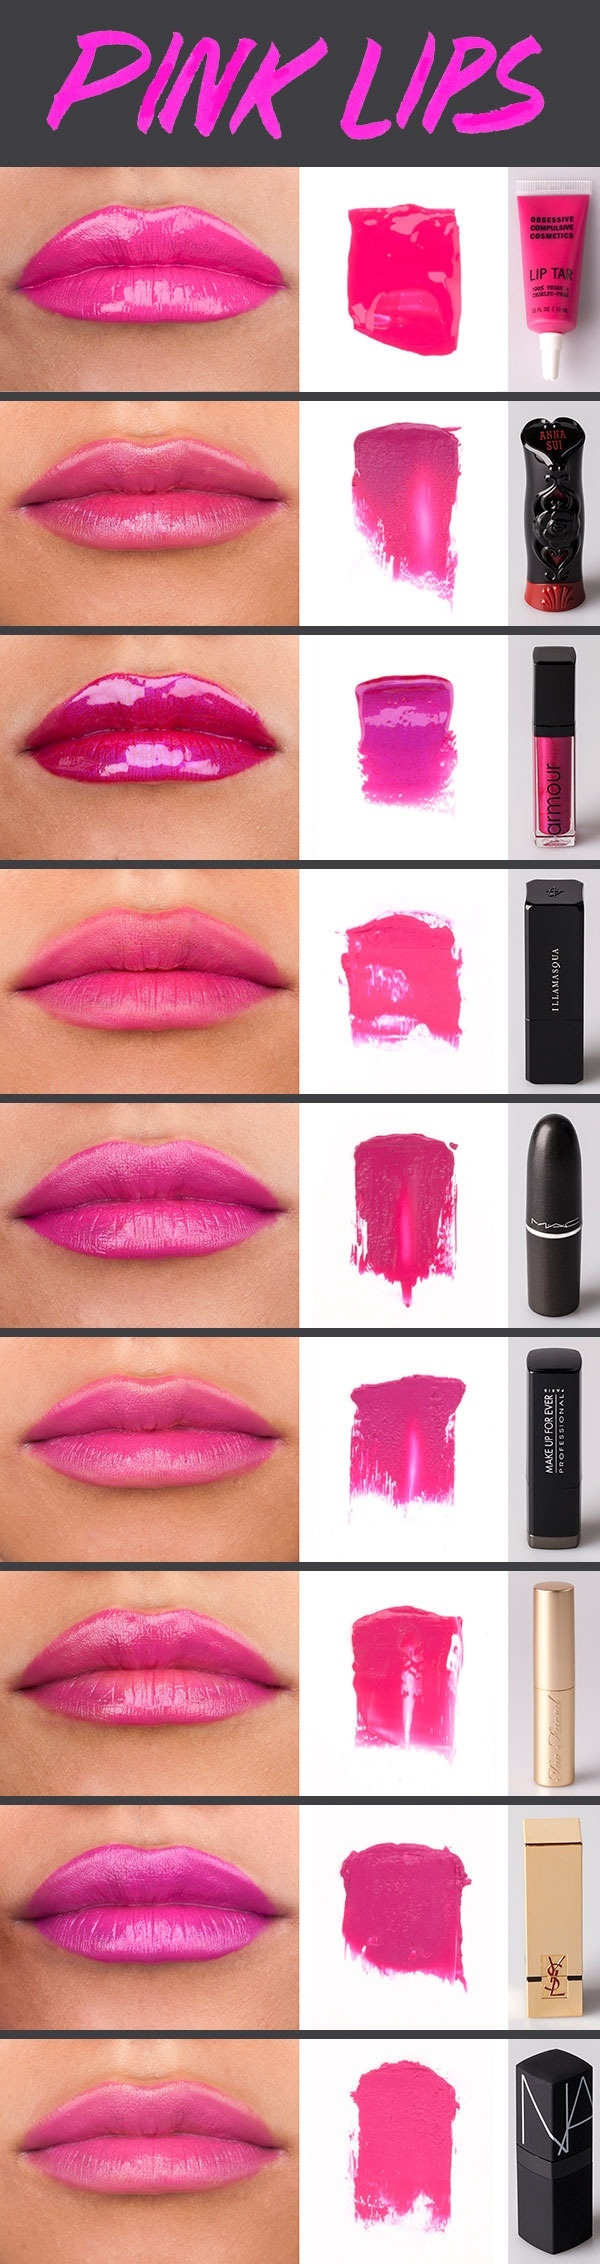 Different shades of pink lipsticks #poshprofs